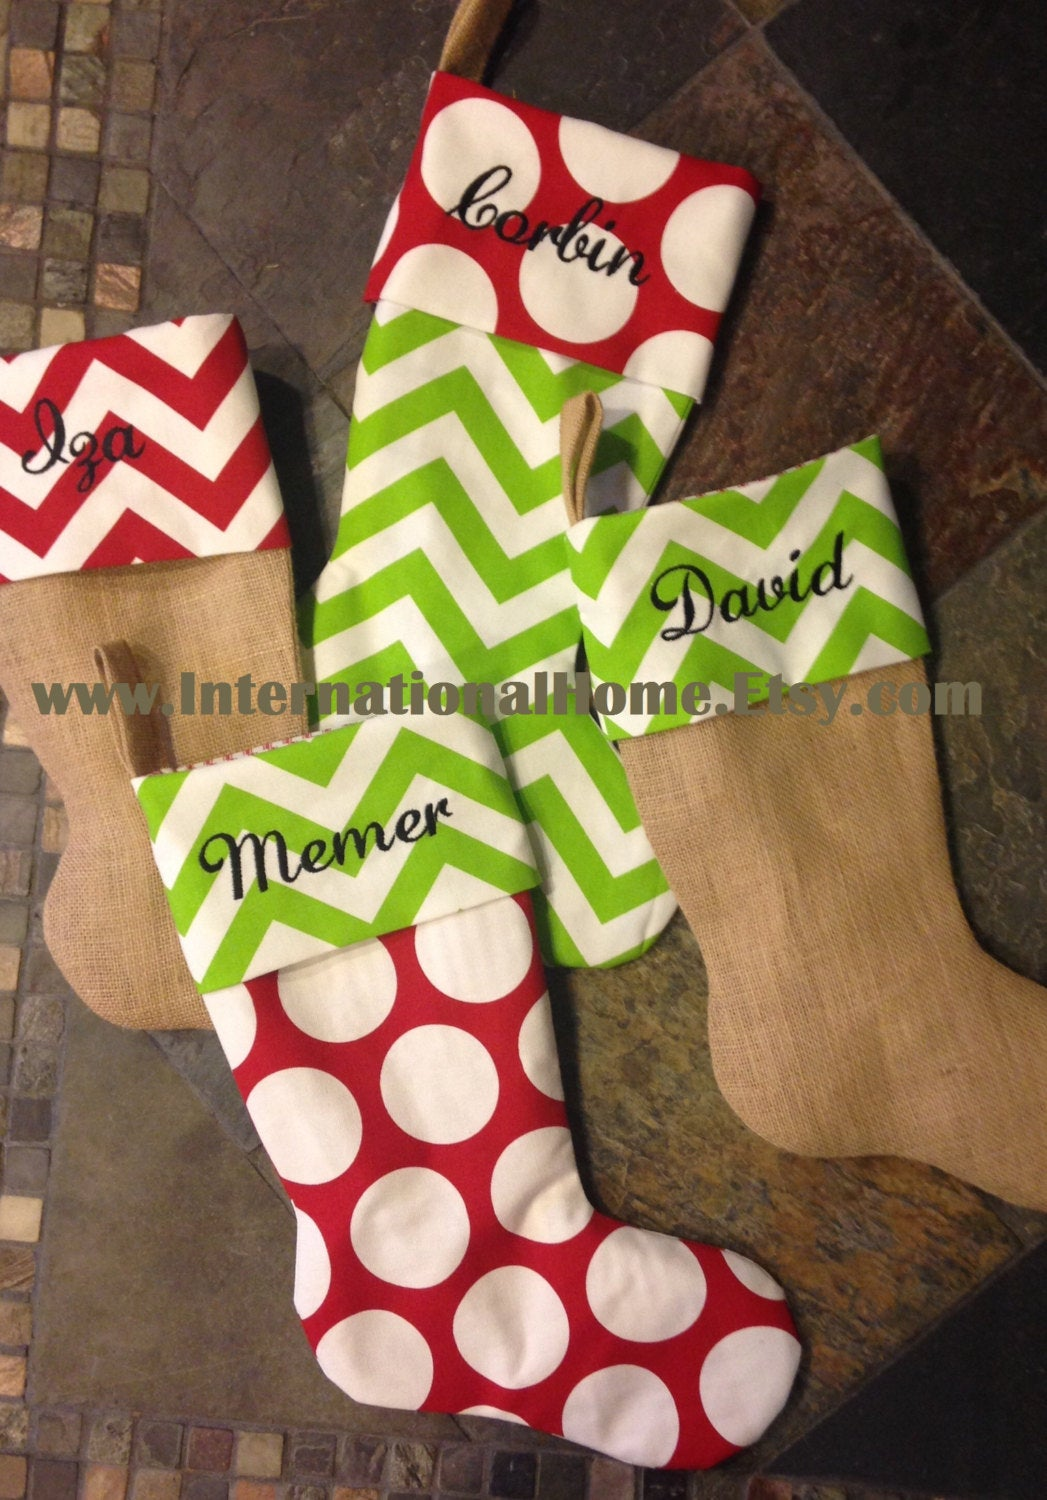 Single Custom made Christmas Stockings w/ FREE SHIPPING!